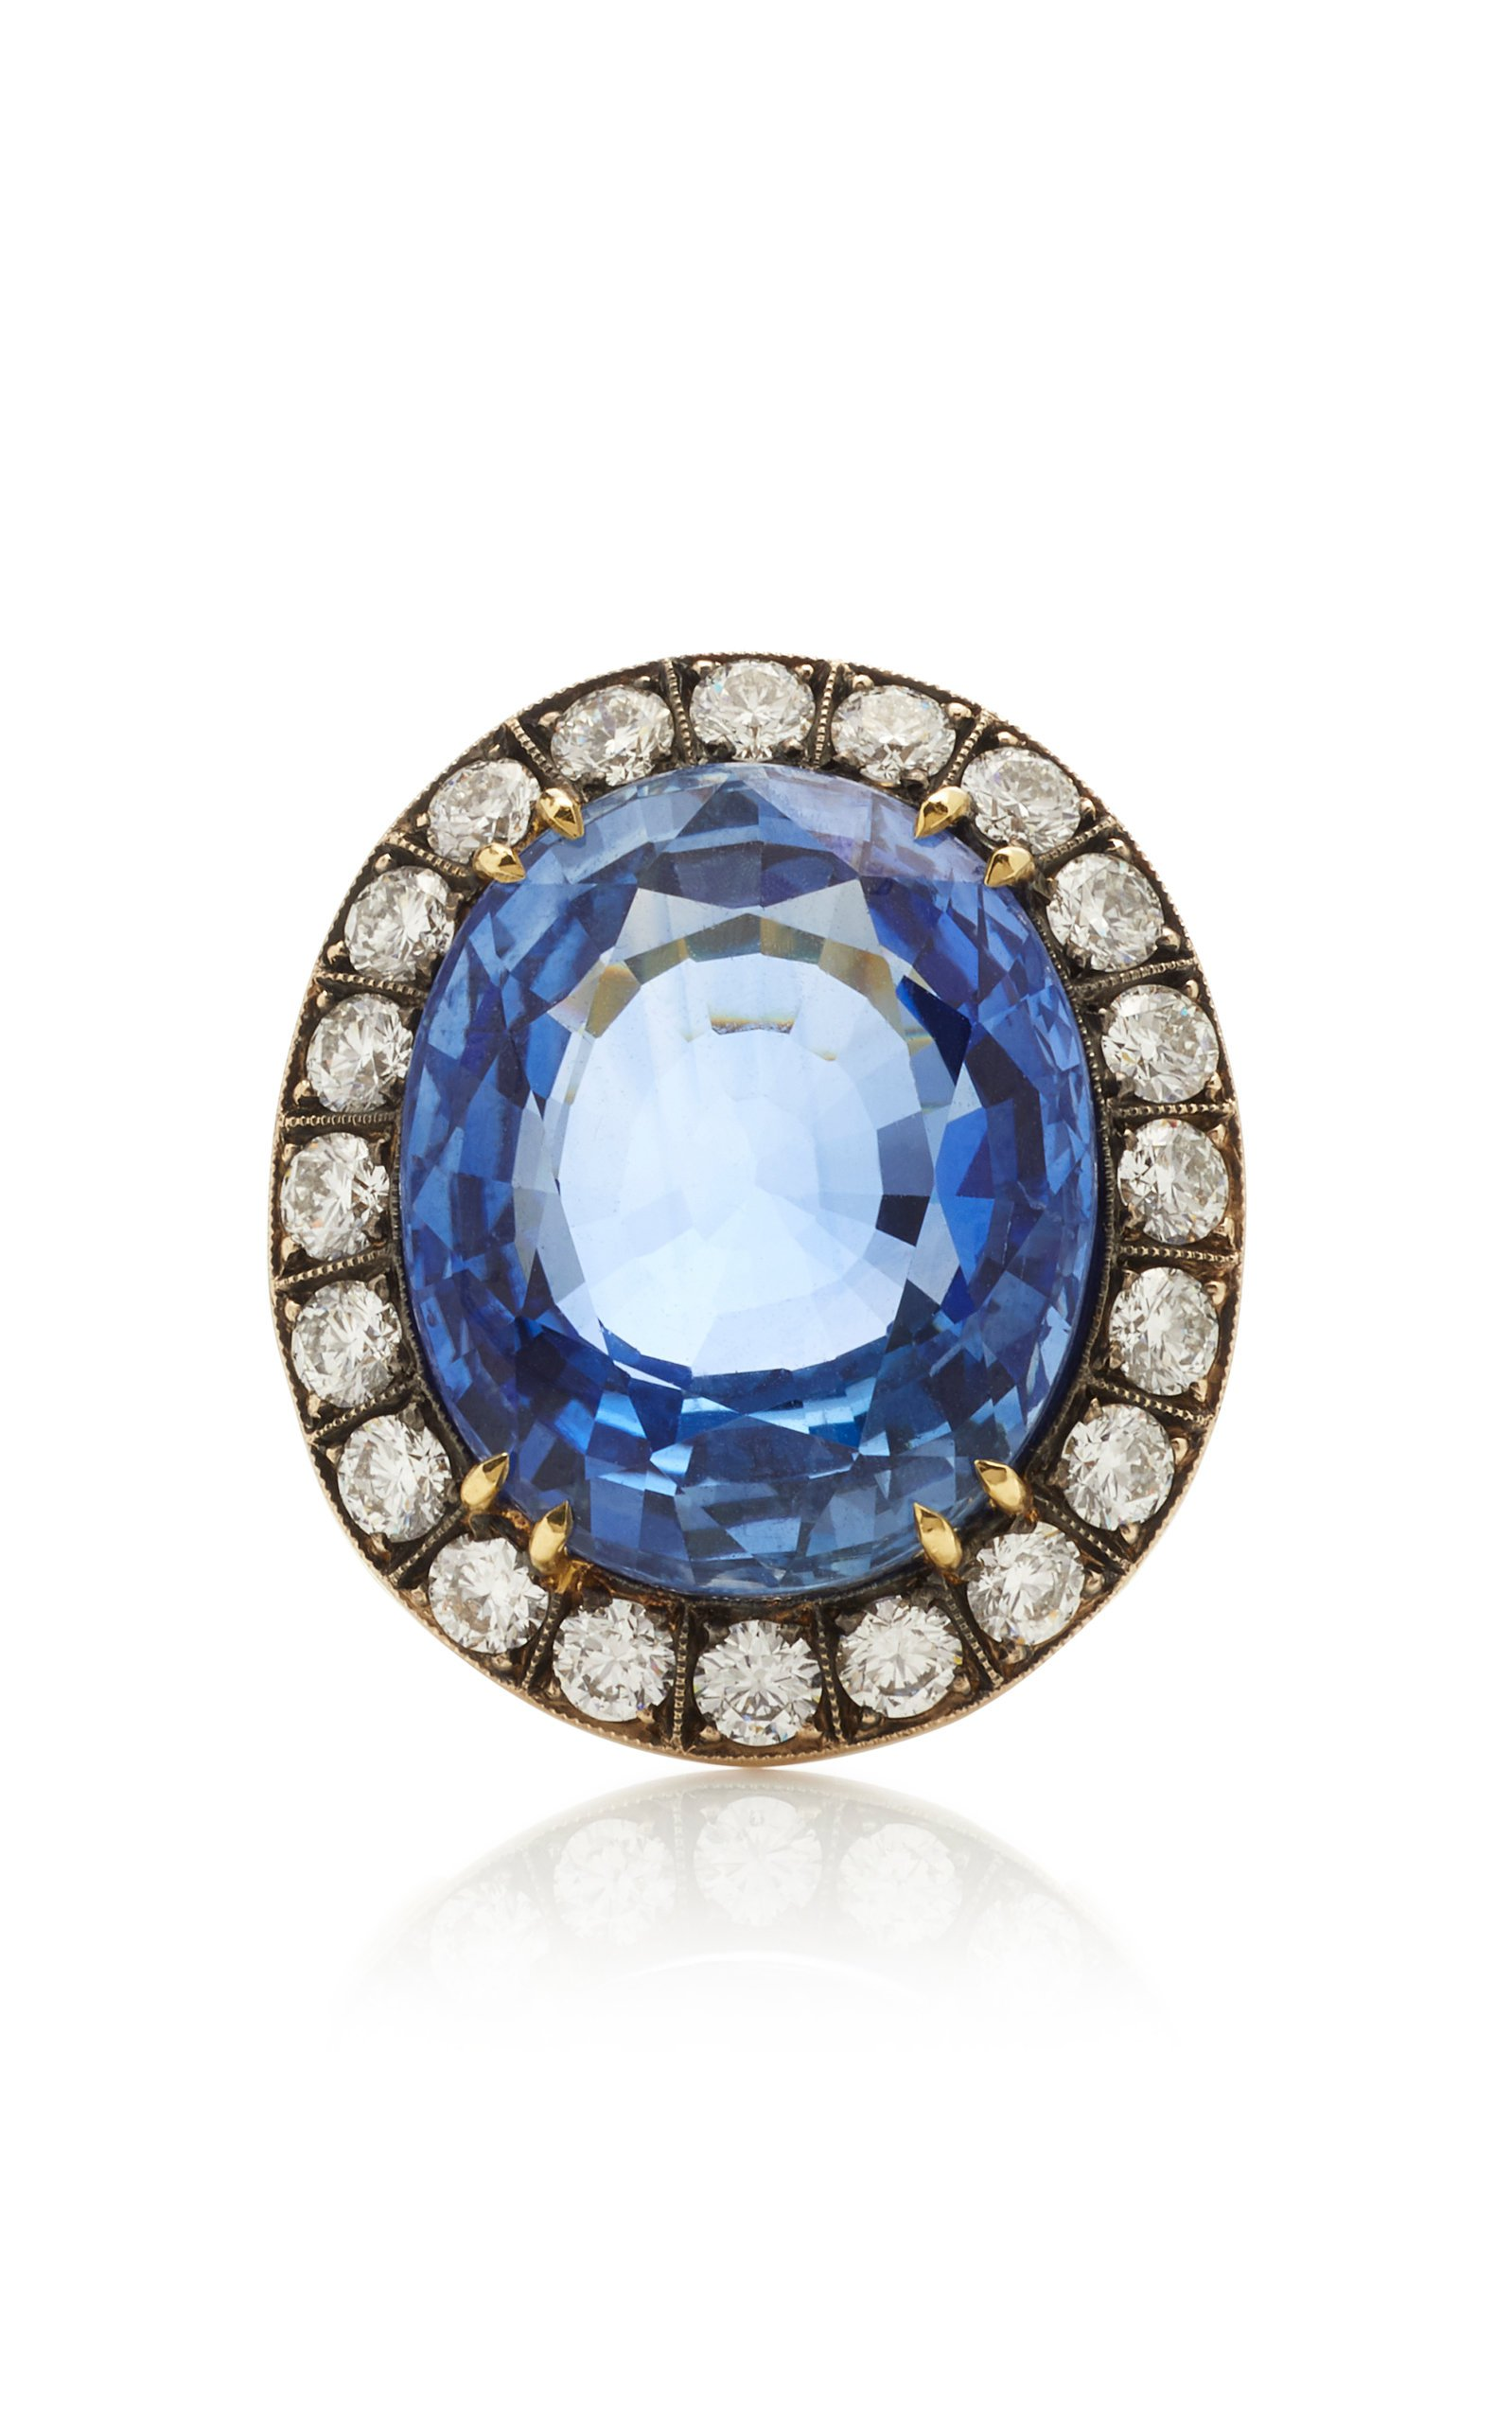 Sylva & Cie 18K Gold Sapphire and Diamond Ring